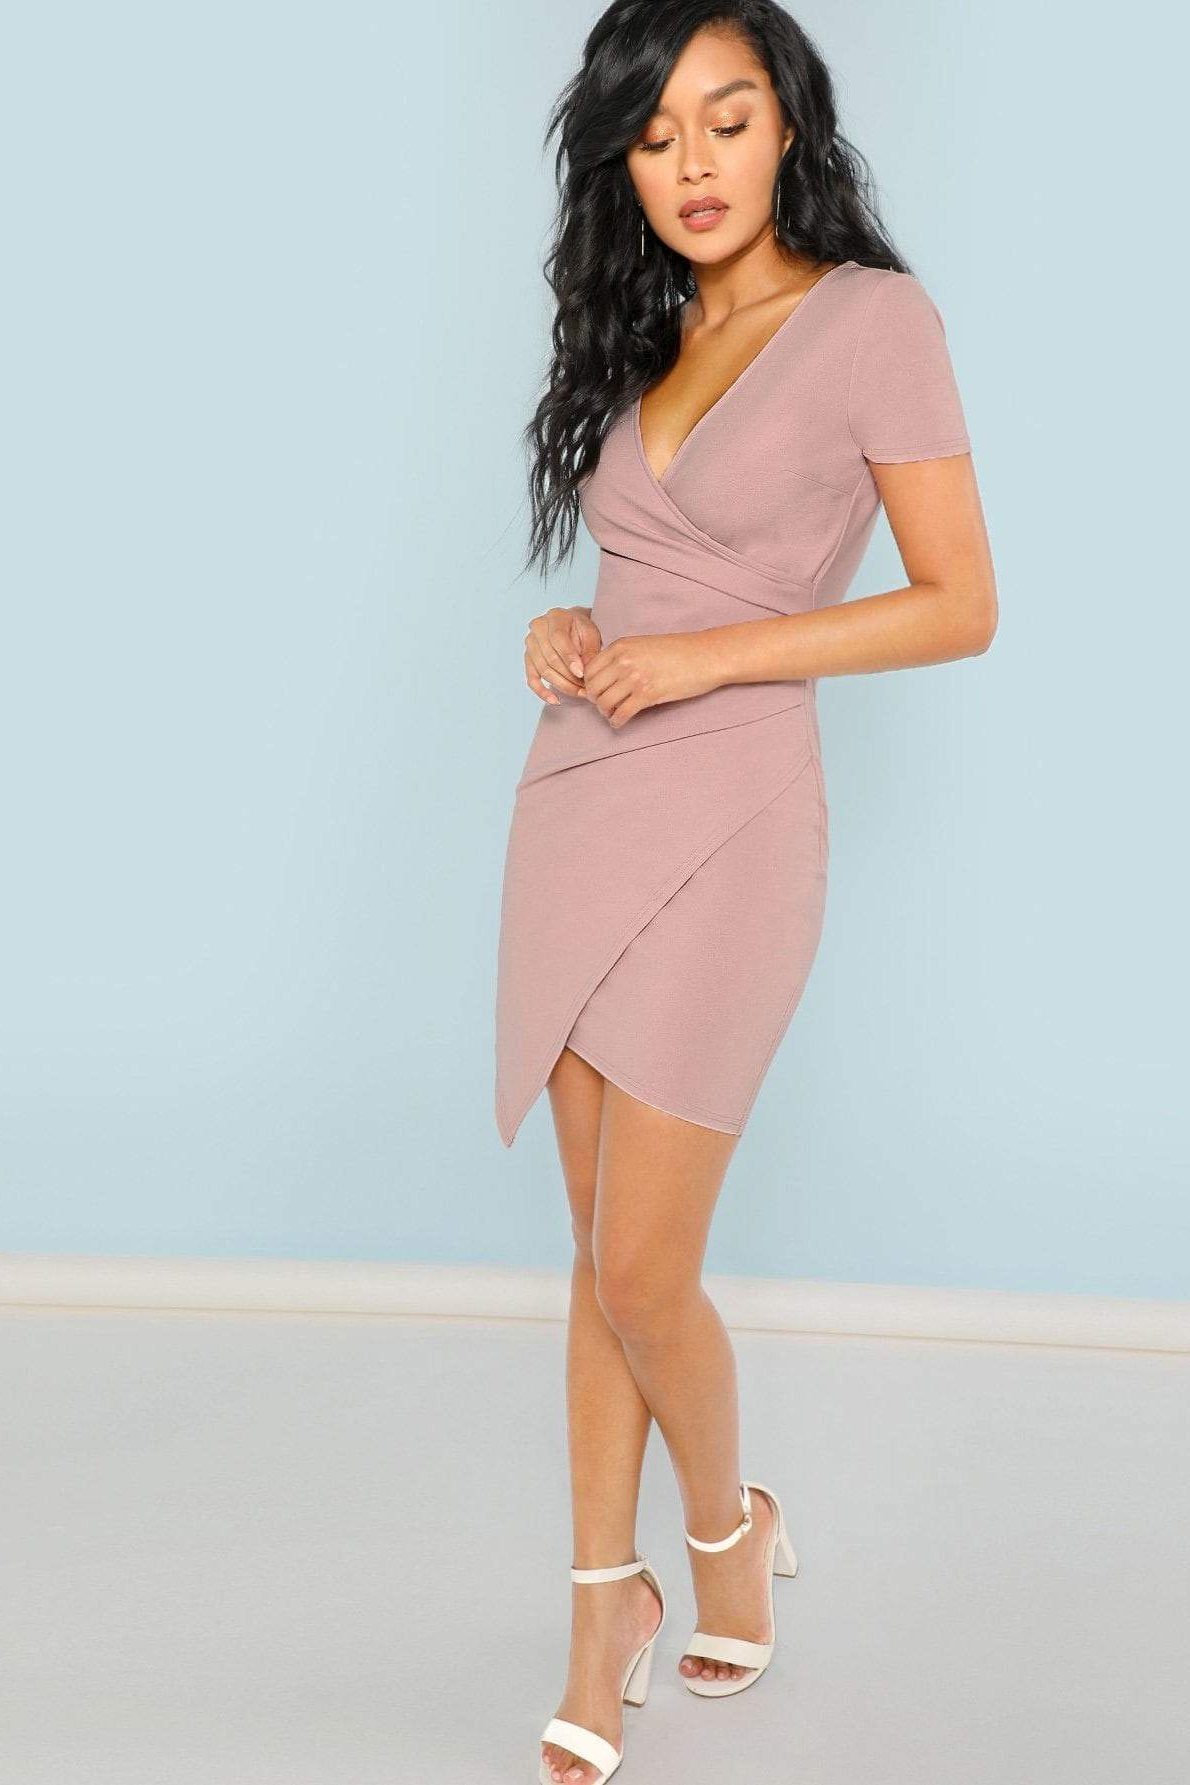 Women's Sexy Going Out Albany Wrap Fitted Dress | Love Me Trender